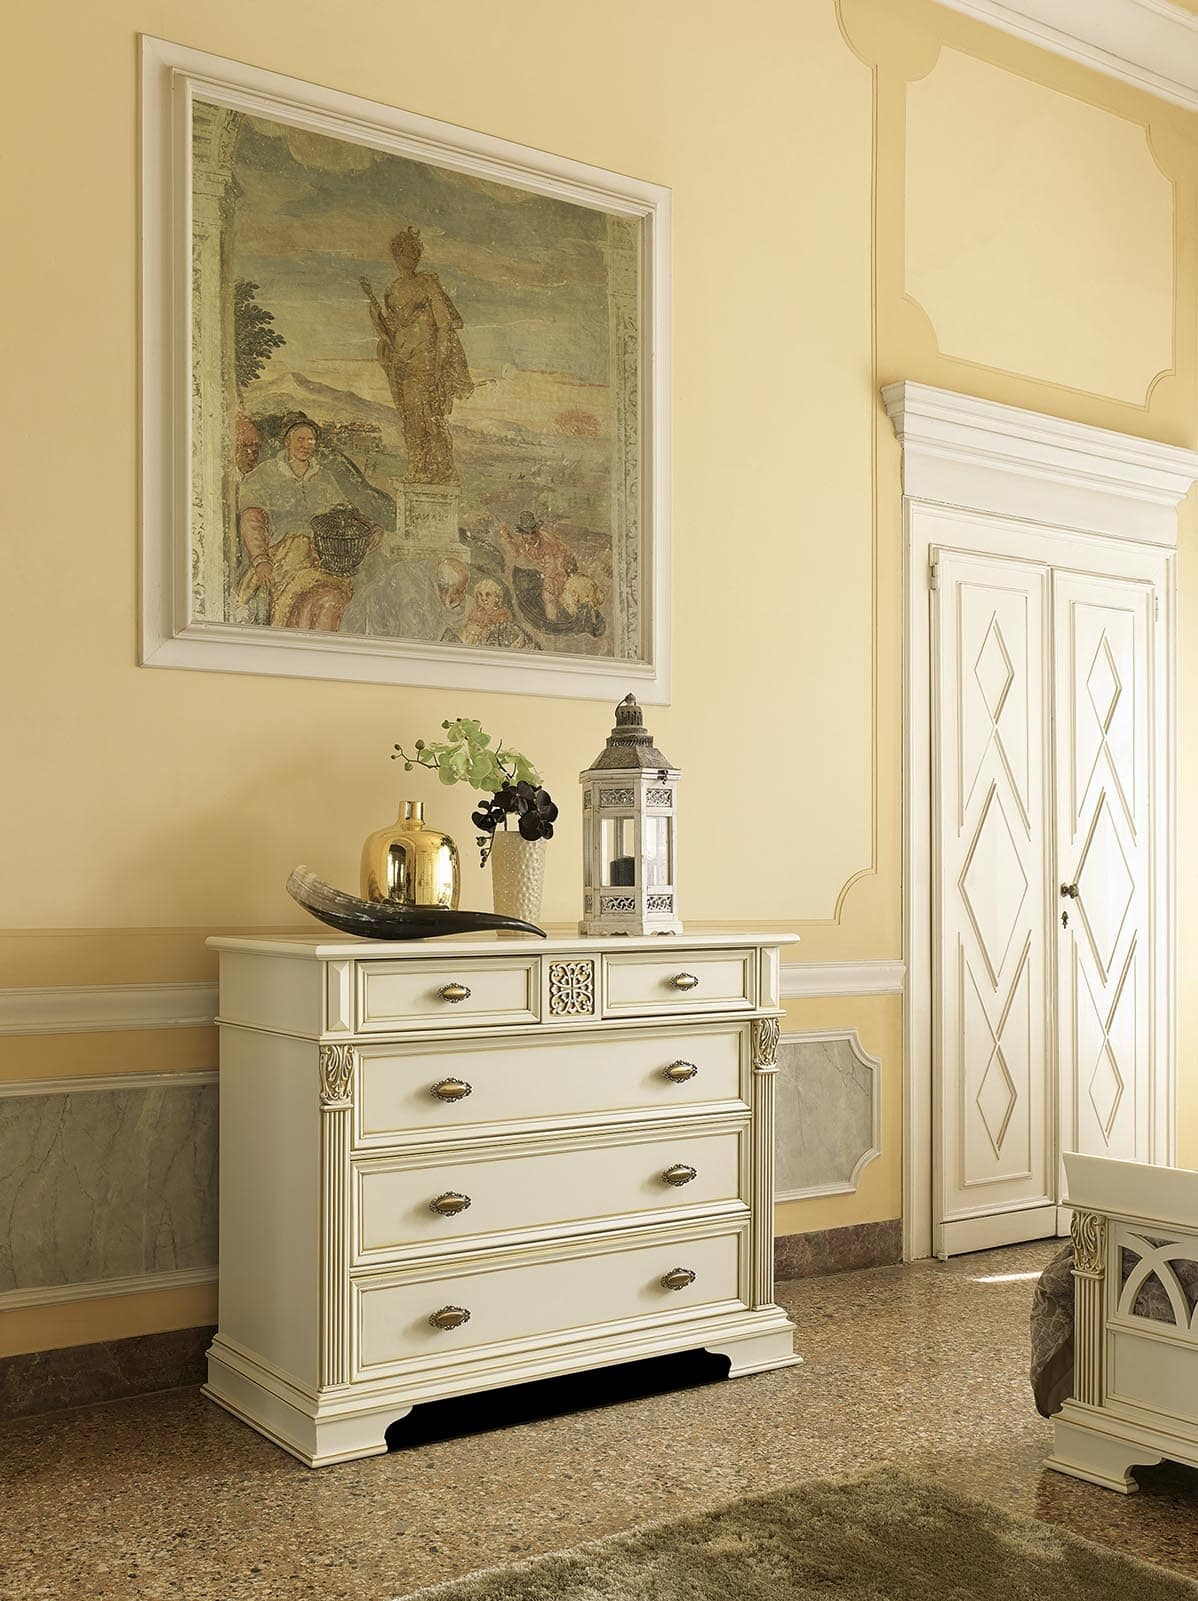 Art. 44528 Puccini, Chest of drawers with 5 drawers, in luxury classic style